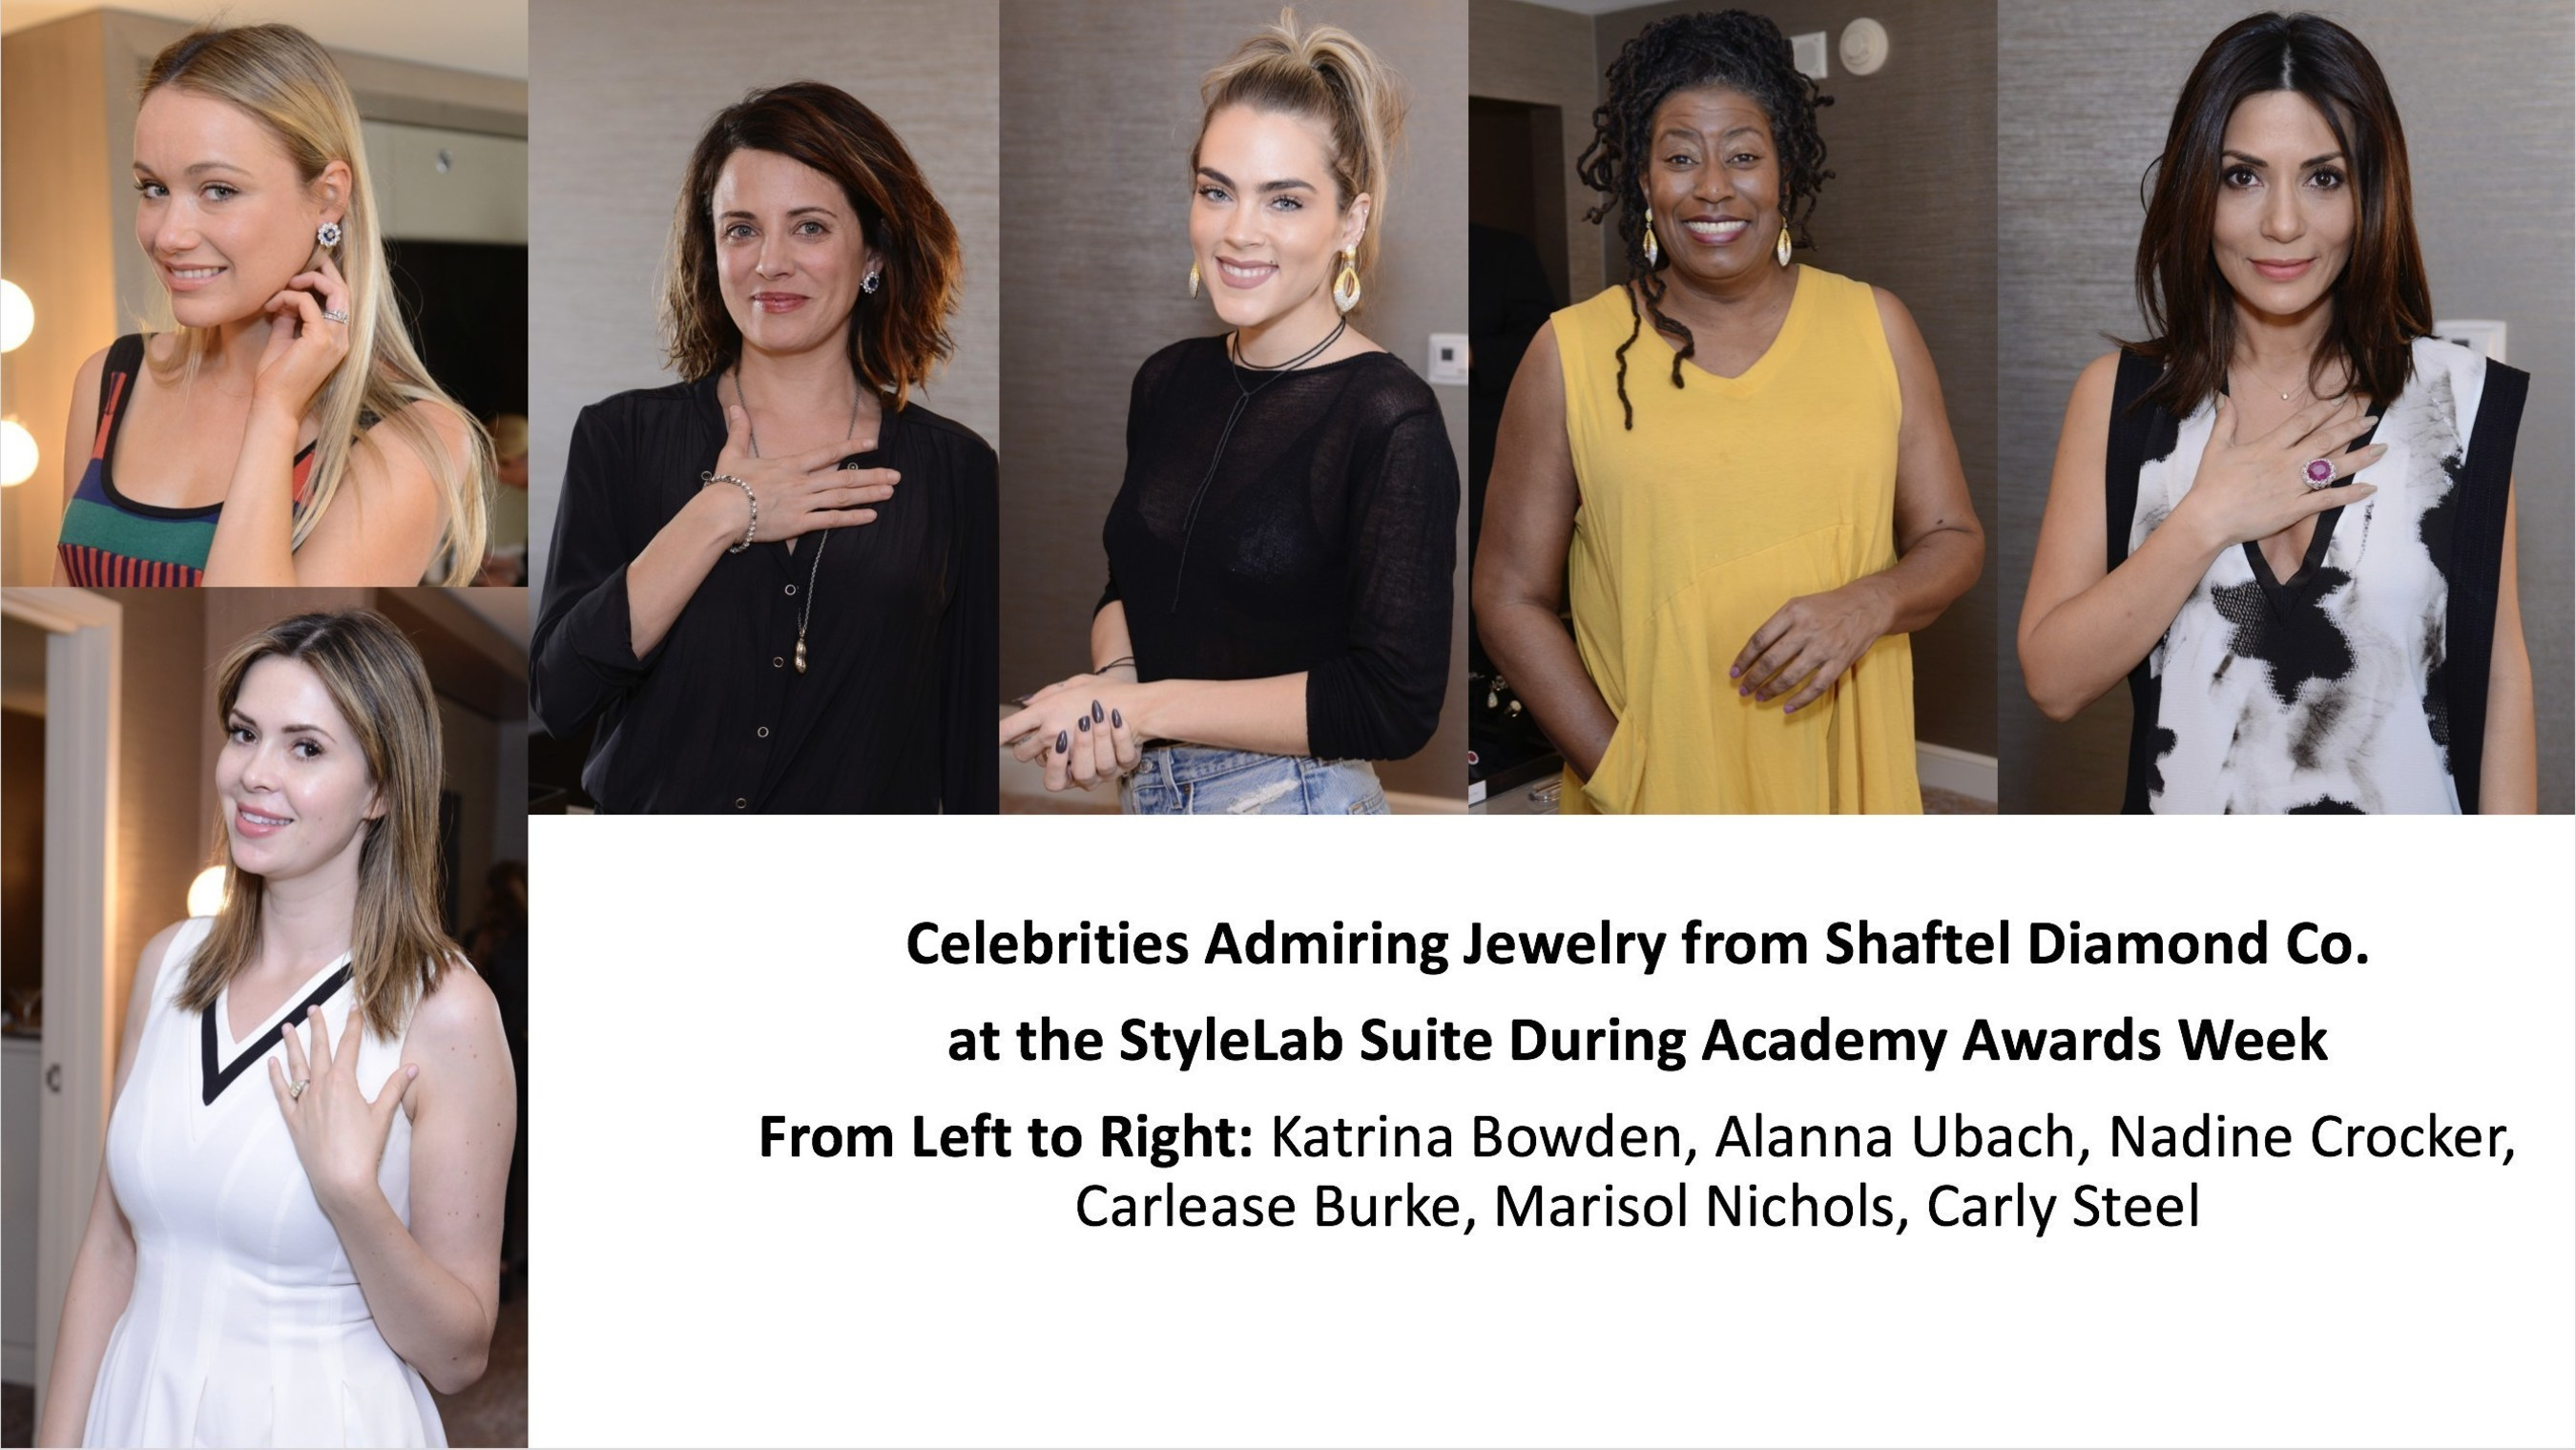 COUNTDOWN TO THE OSCARS: Celebrities and their Stylists Previewed Jewelry from Shaftel Diamond Co.